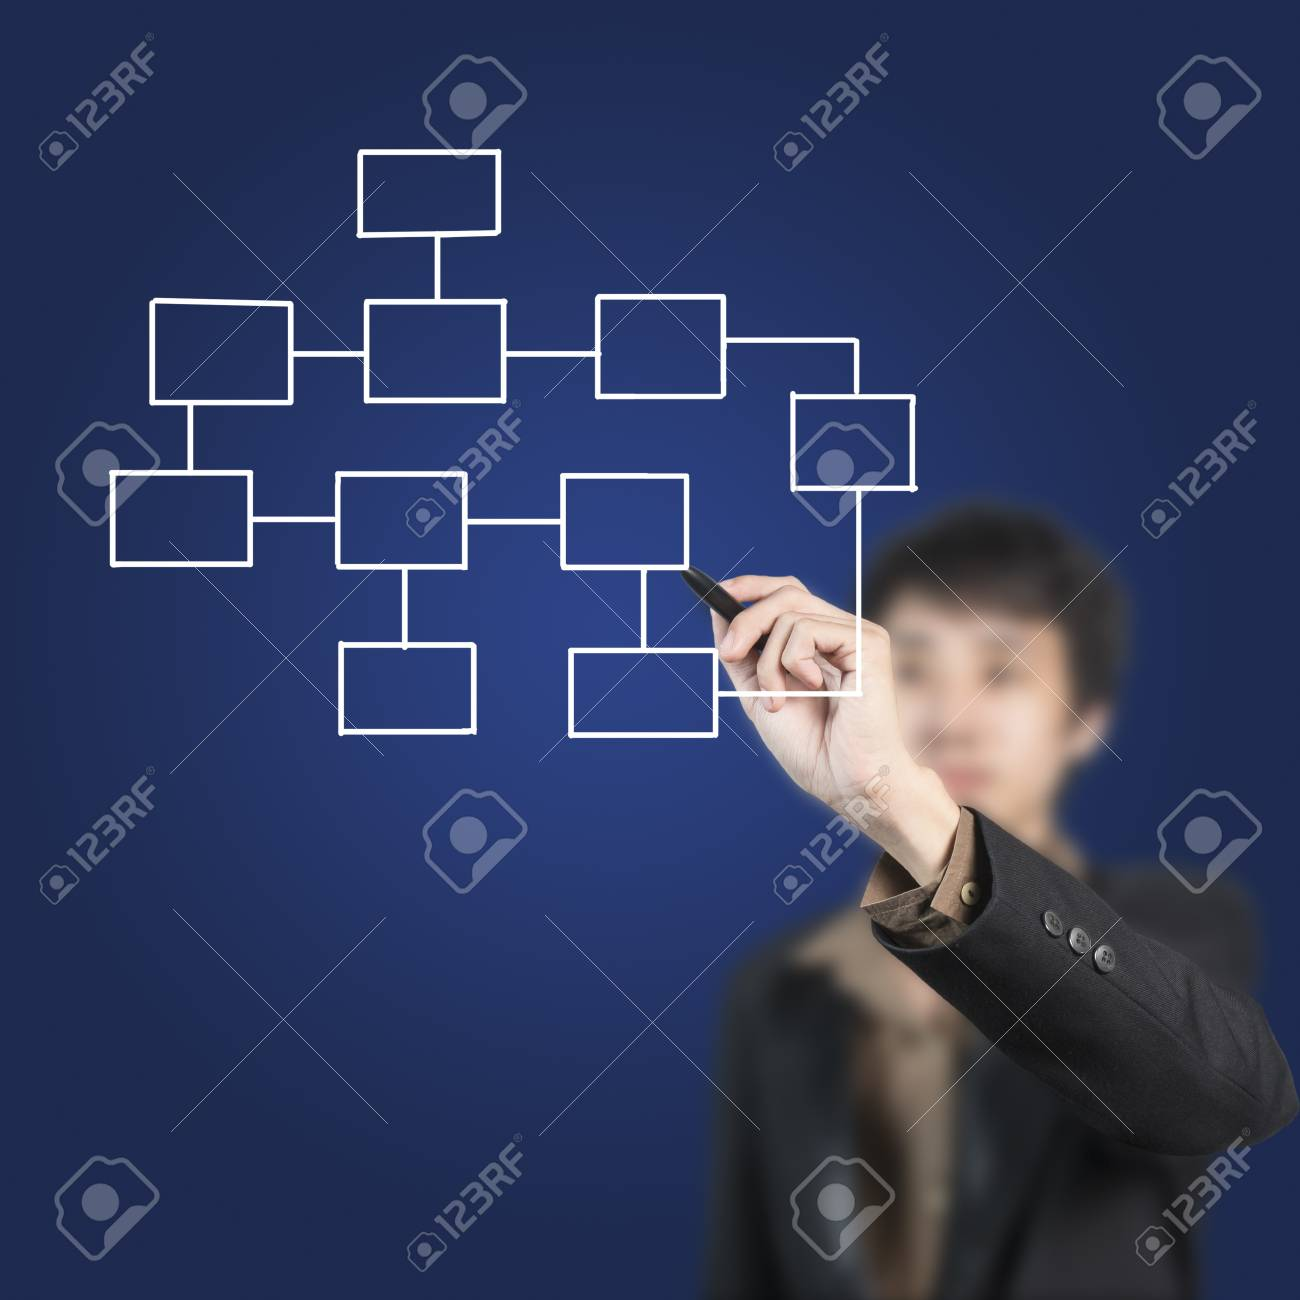 Businessman drawing connection on whiteboard Stock Photo - 14704600